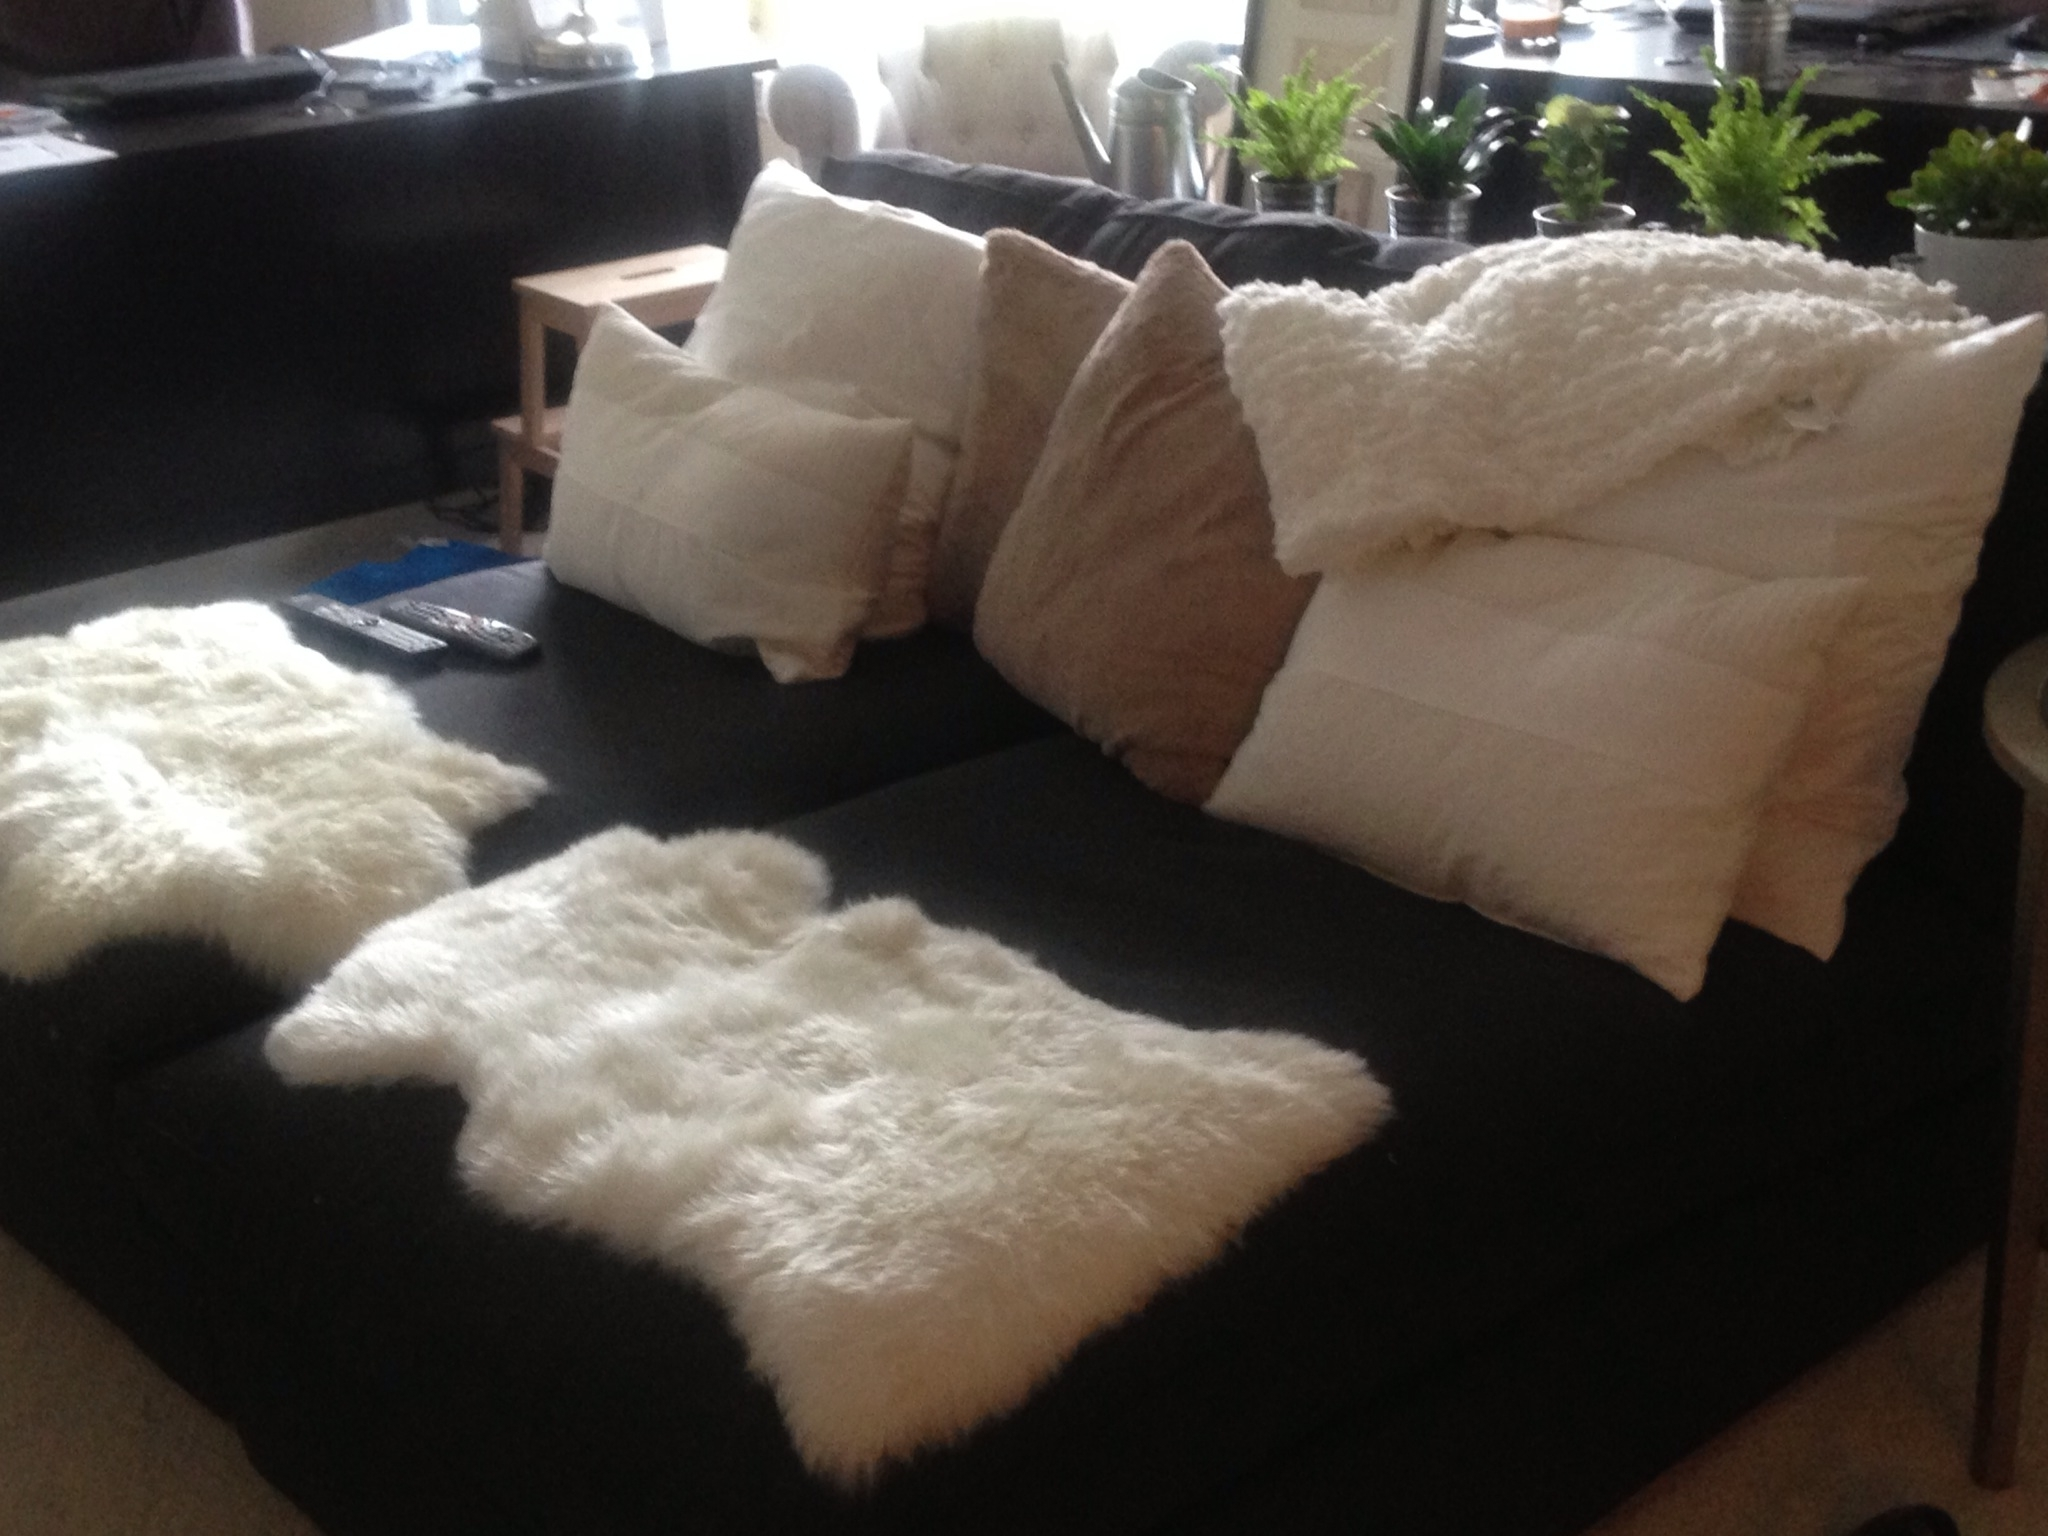 Most Recent Kivik Chaises Pertaining To 2 Kivik Chaises From Ikea + Lots Of Soft Fluffy Things = Tv (View 10 of 15)